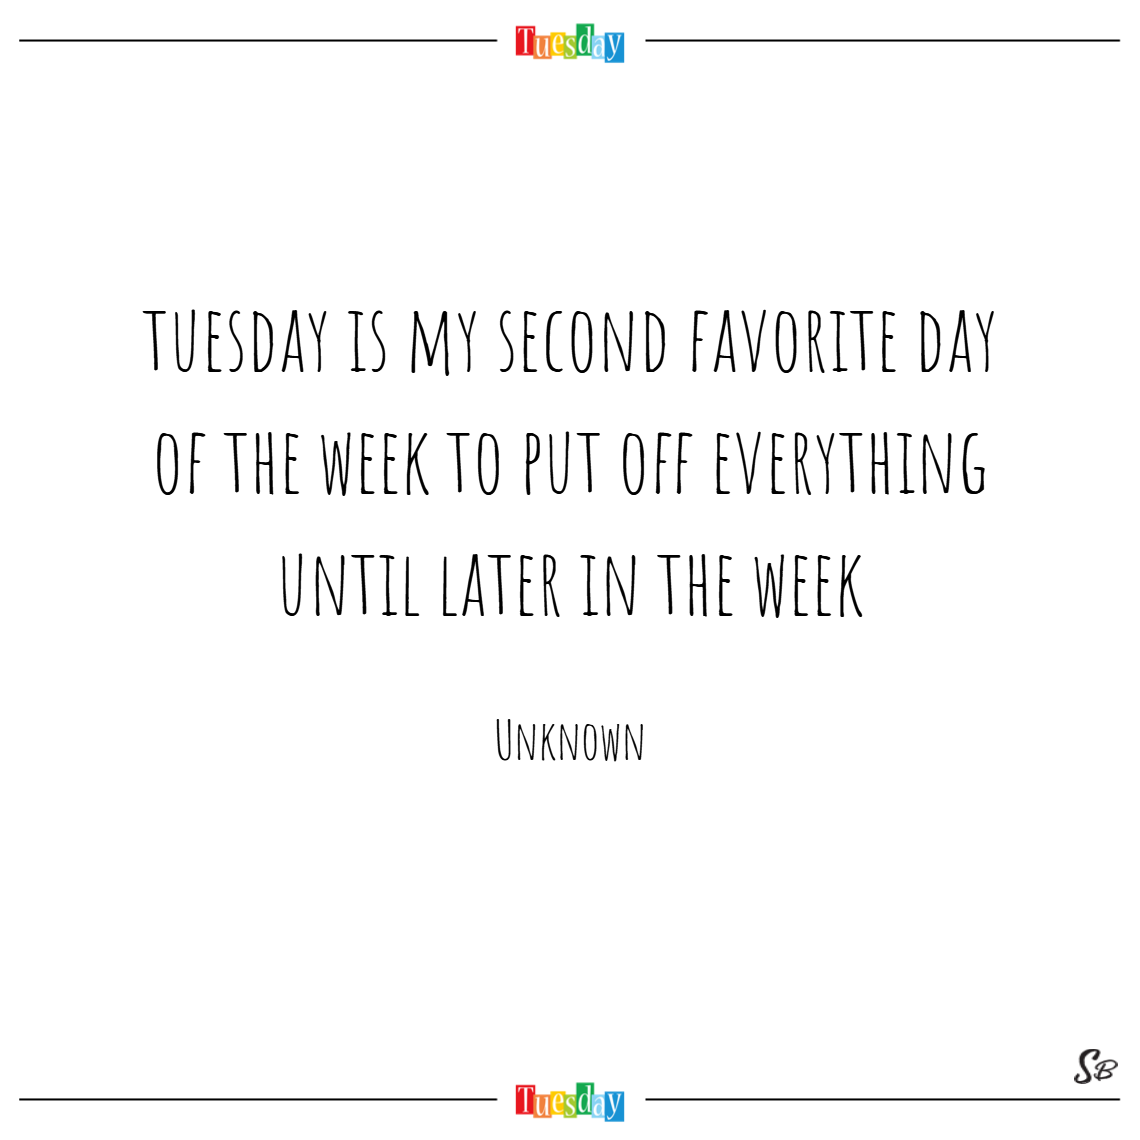 Tuesday is my second favorite day of the week to put off everything until later in the week. – unknown